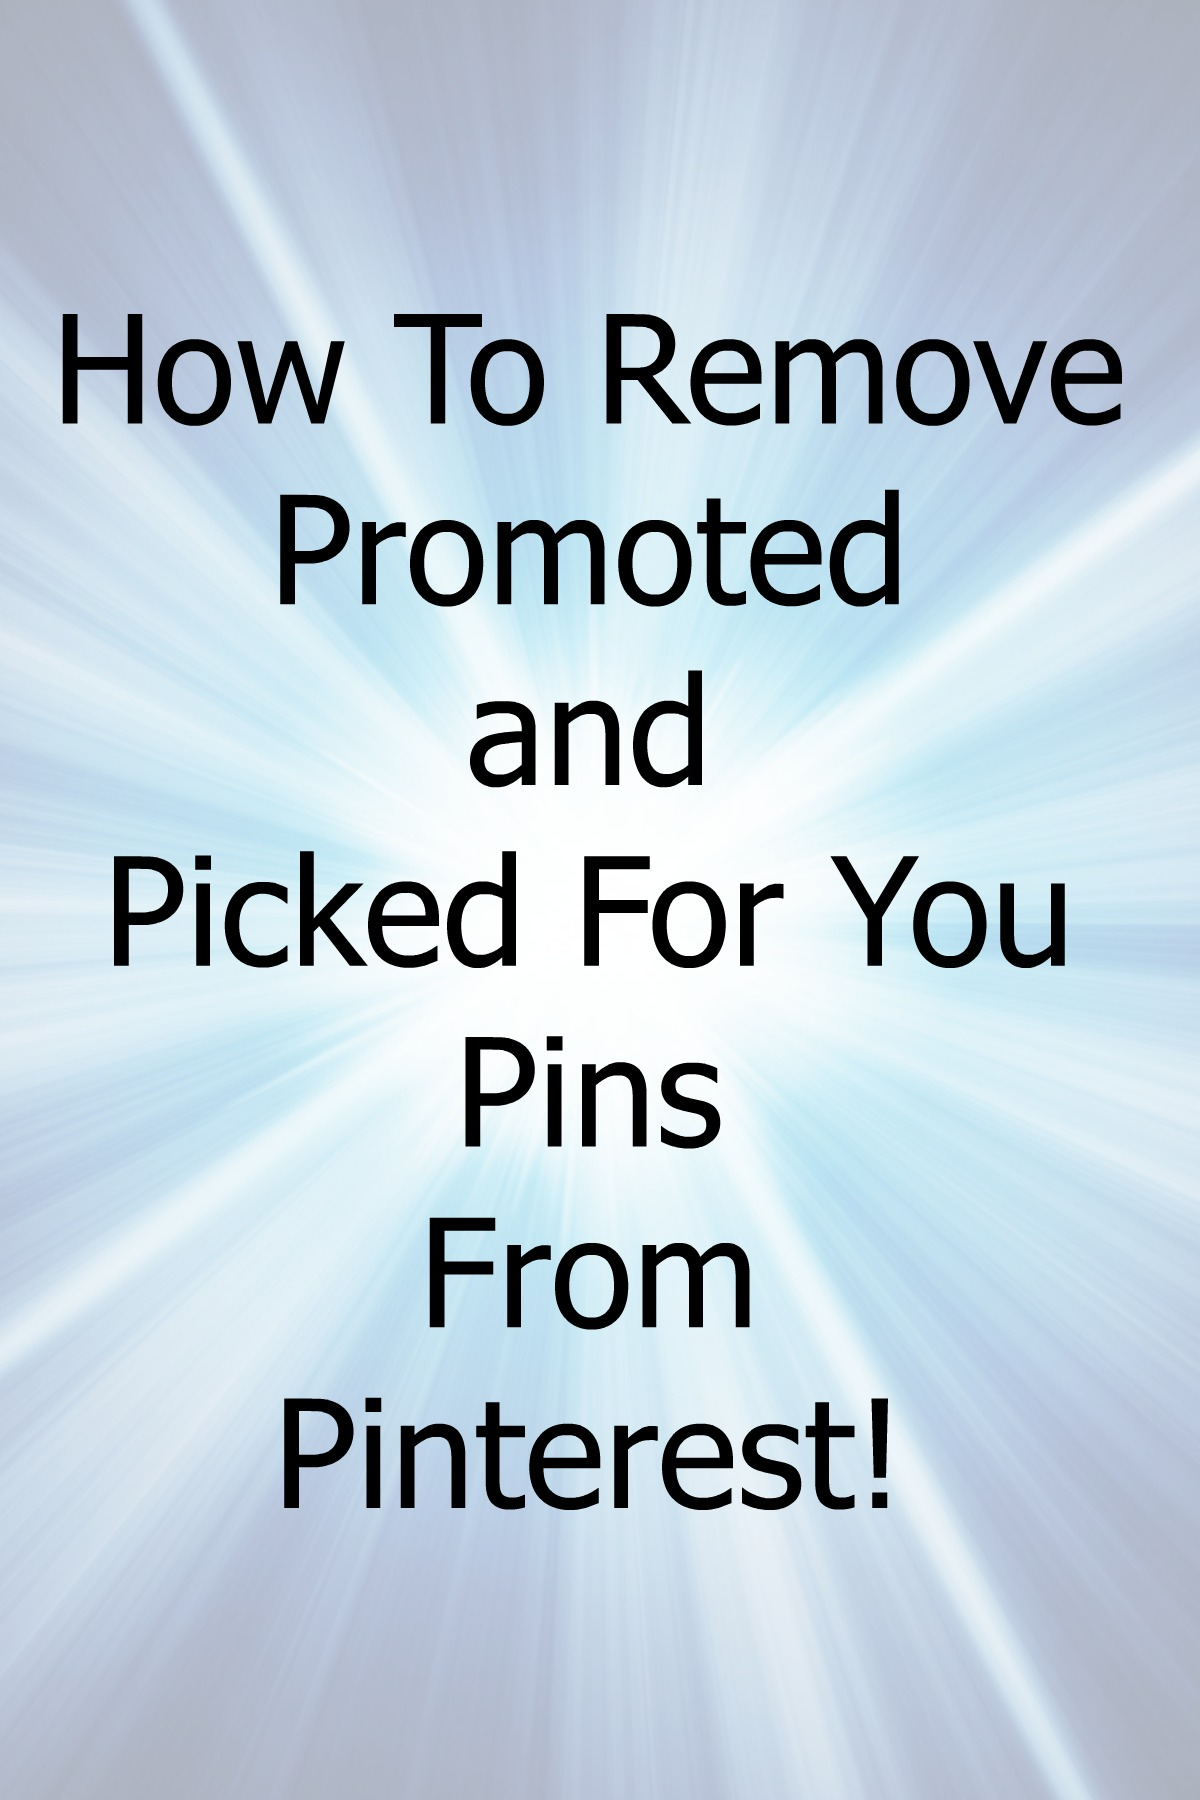 How to remove promoted and picked for you pins on Pinterest